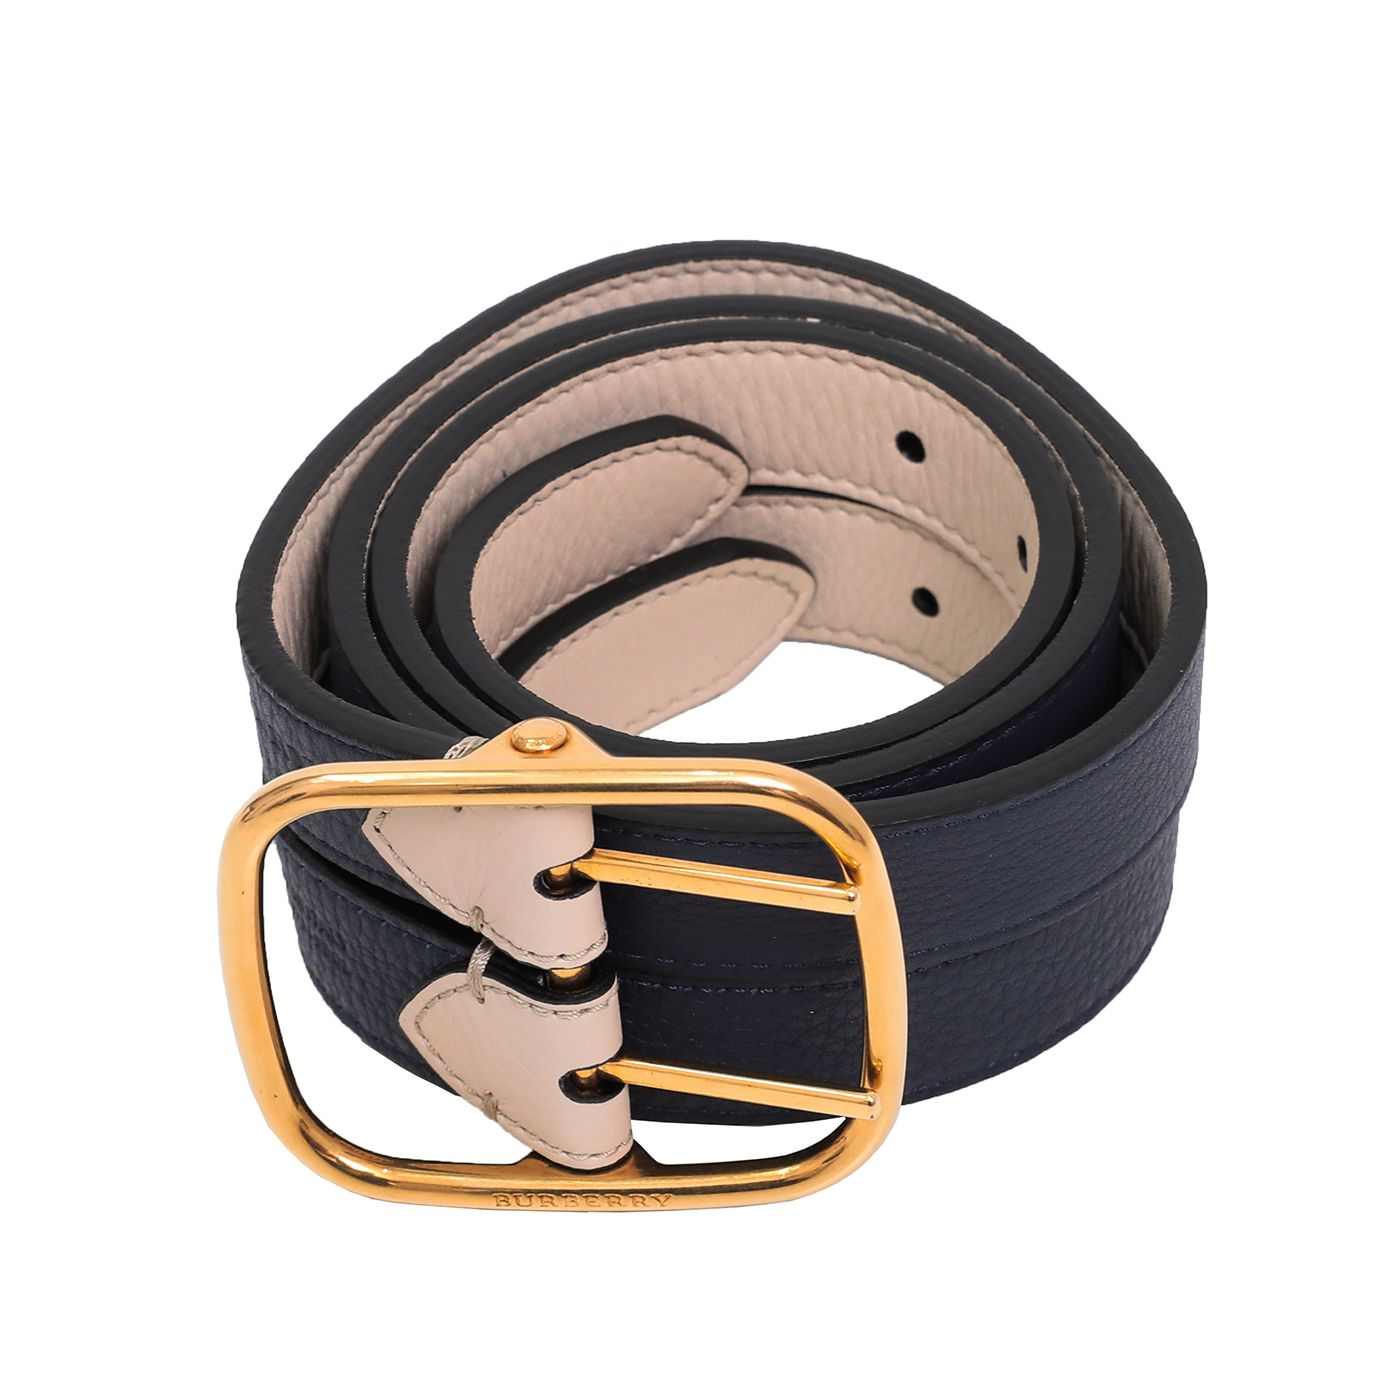 Burberry Bicolor Double Strap Lynton Belt 32